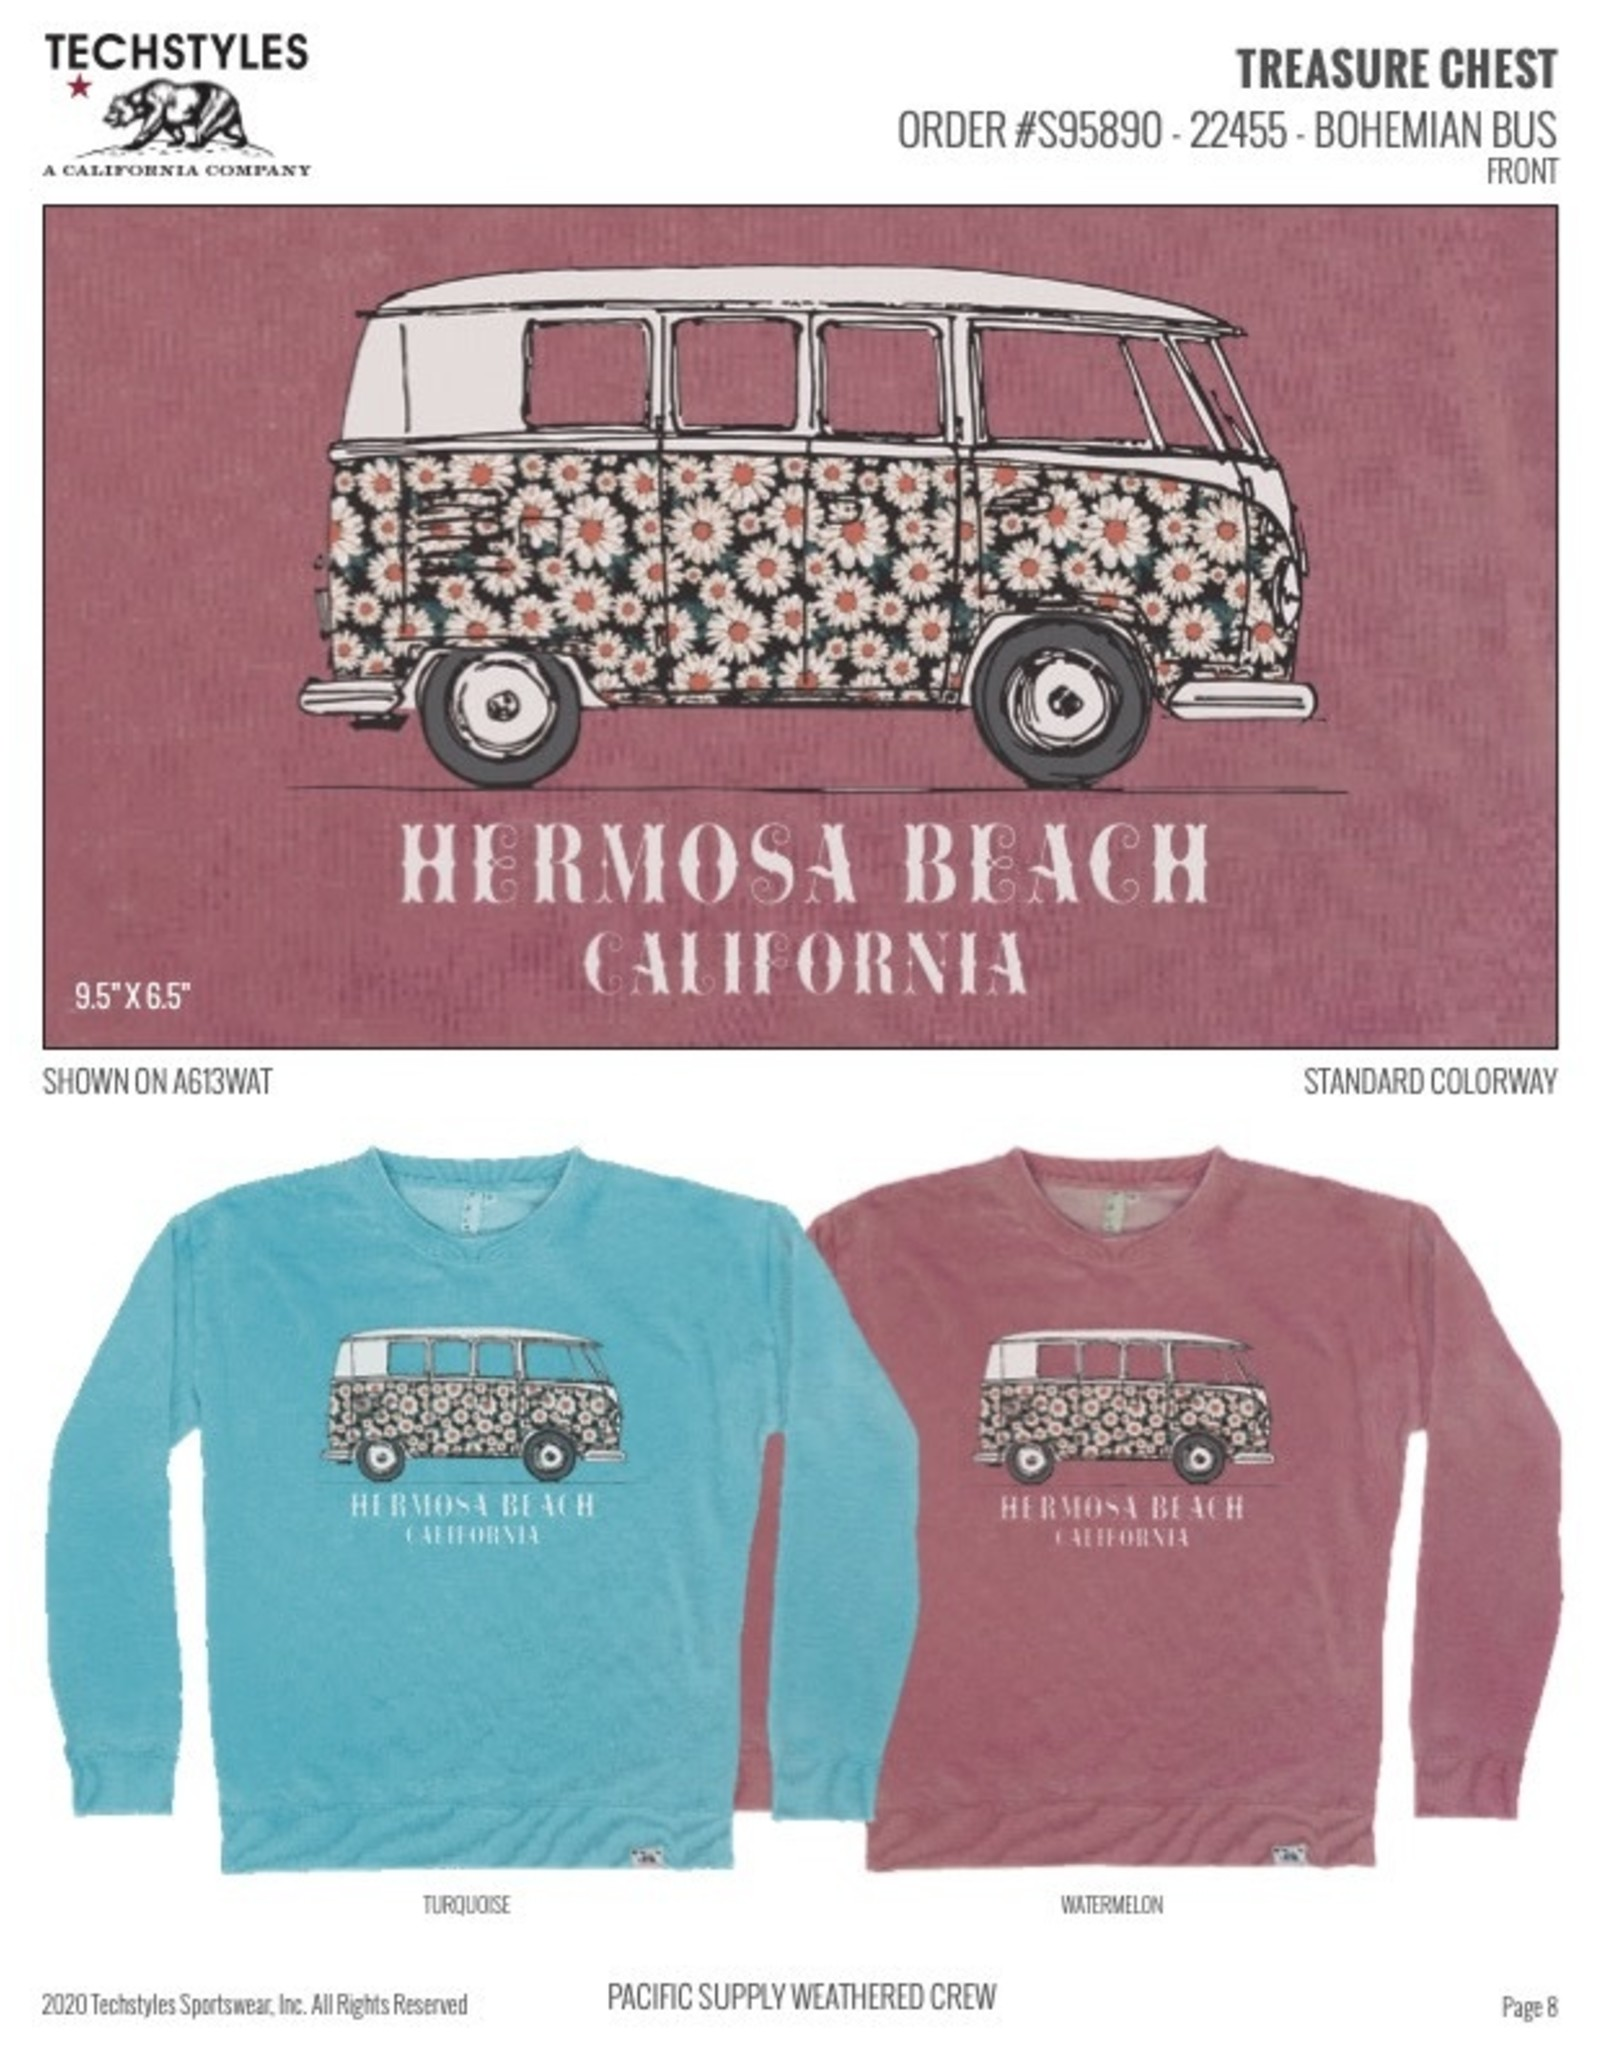 Techstyles A613TRQ SWT TS HB BOHEMIAN BUS CREW TURQUOISE